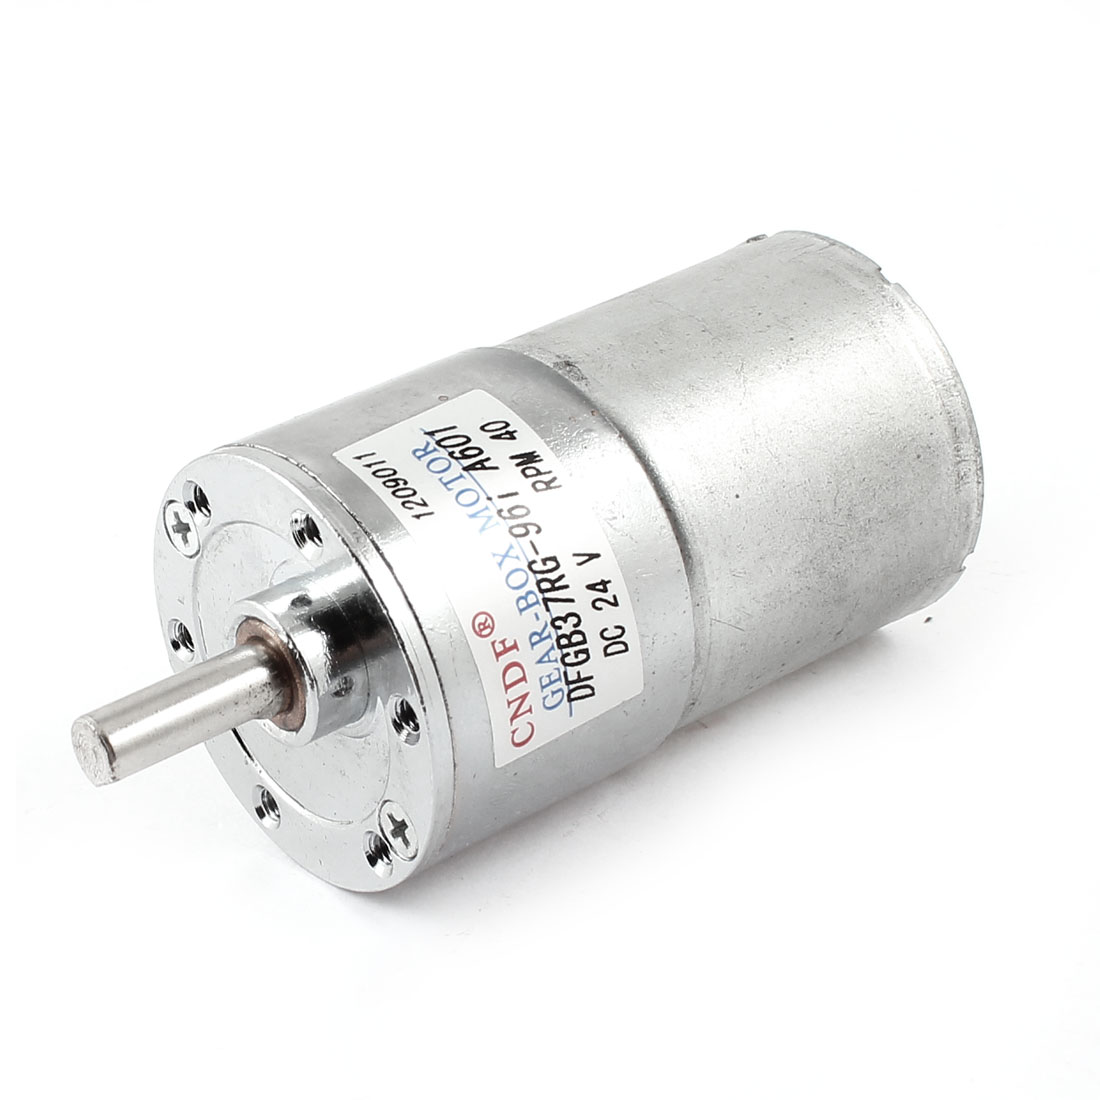 6mm Shaft 35m Body Diameter 2 Terminal Cylinder Shape Gear Box Motor 40 RPM DC 24V